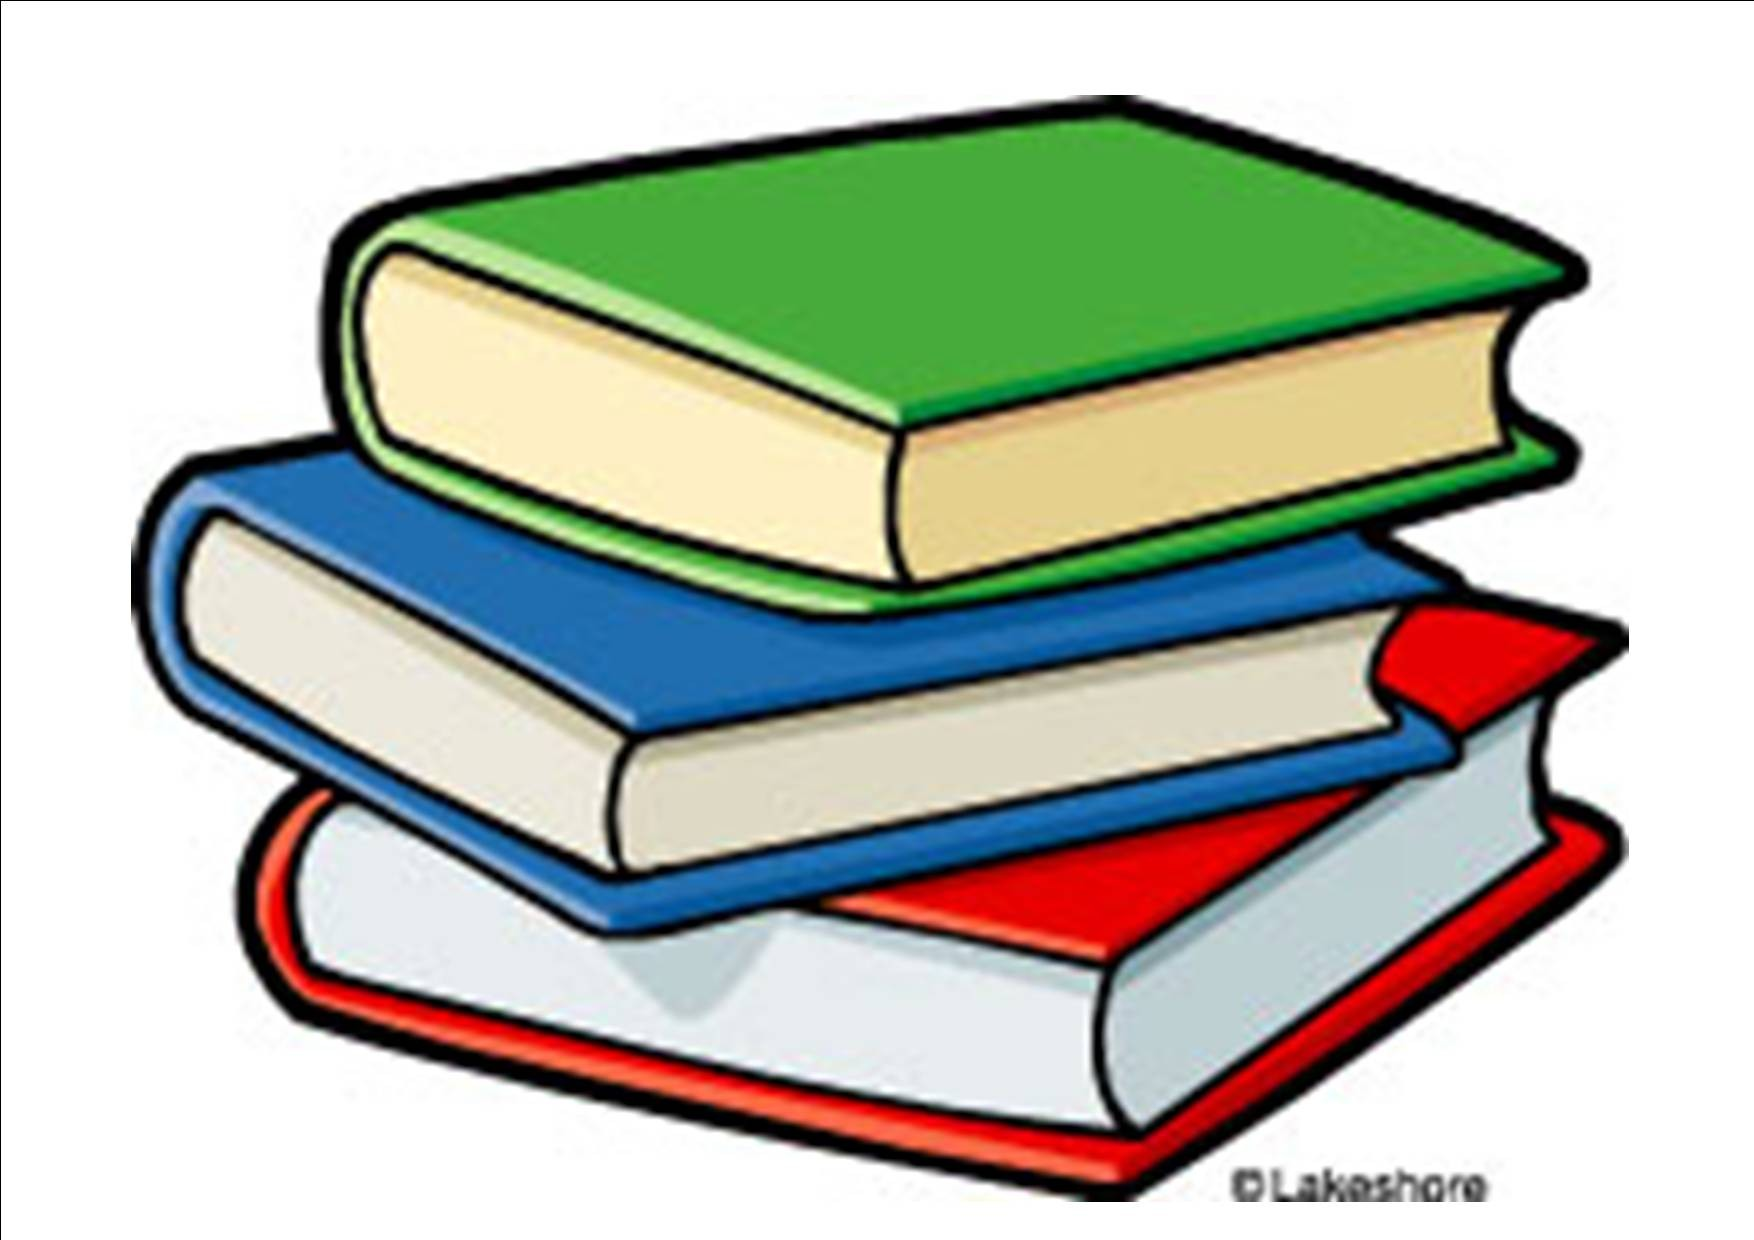 School supplies clipart free images 2